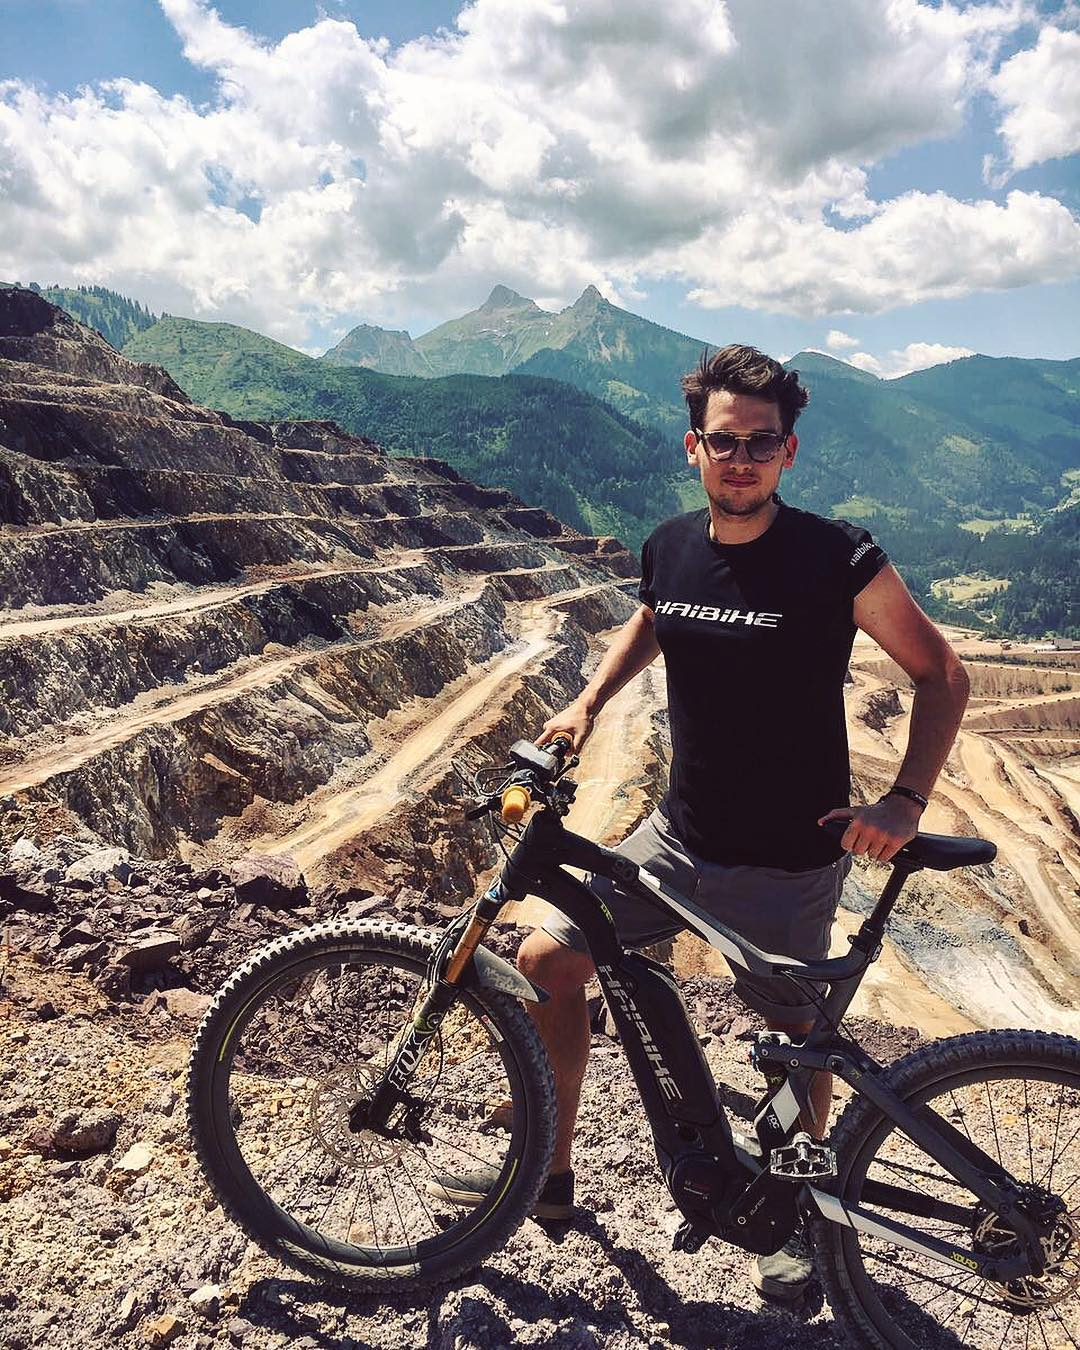 HDCM youngest crew member, the Italian Stallion @mengolor is proudly representing at 2017 Erzbergrodeo #haibike #erzberg #erzbergrodeo #emtb #emountainbike #weareeperformance #xduro